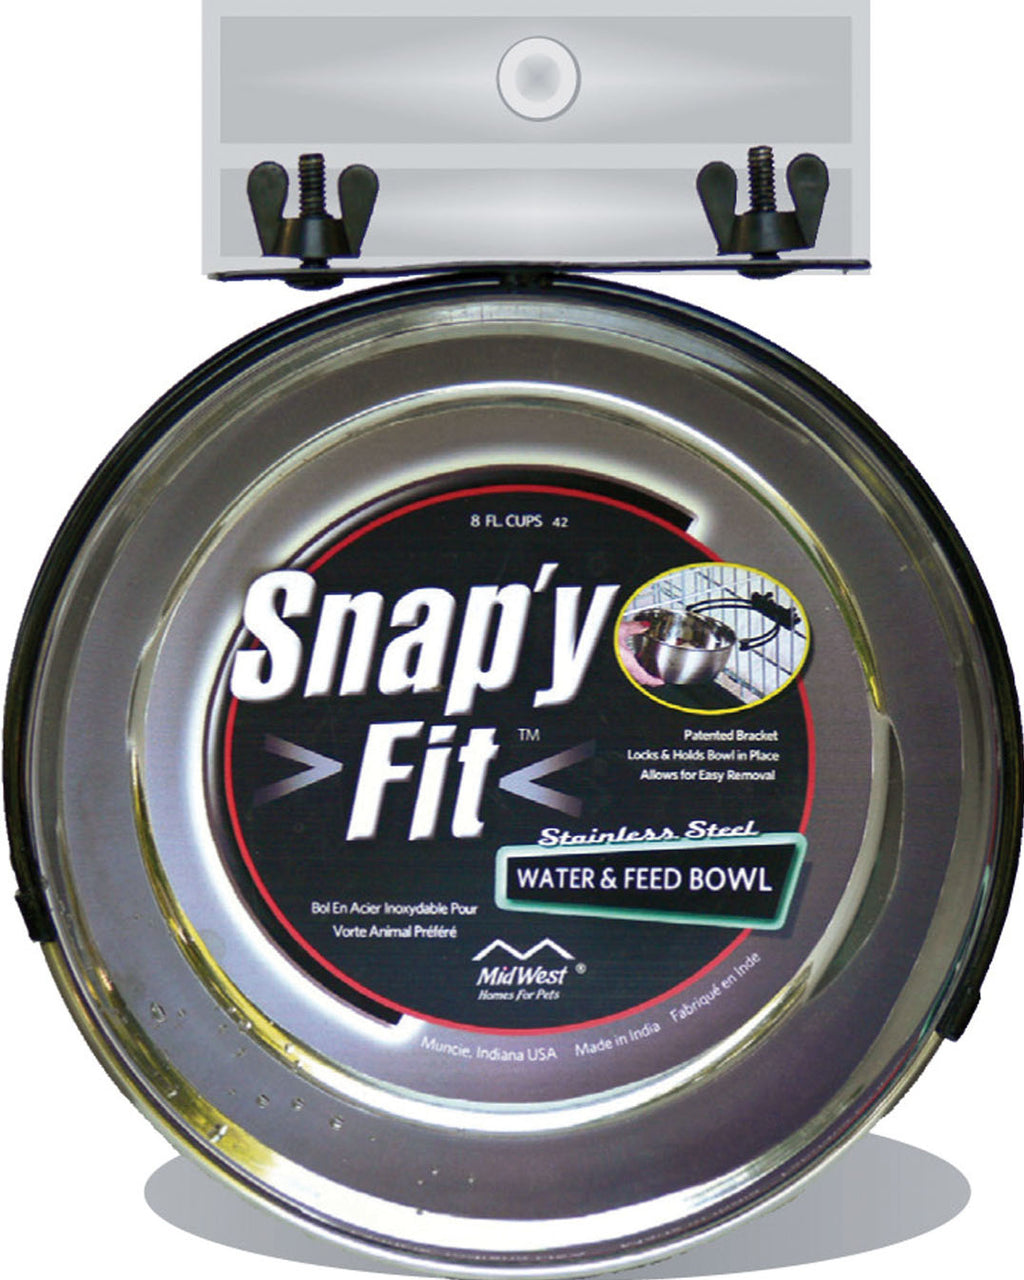 Snap'y Fit Dog Bowl